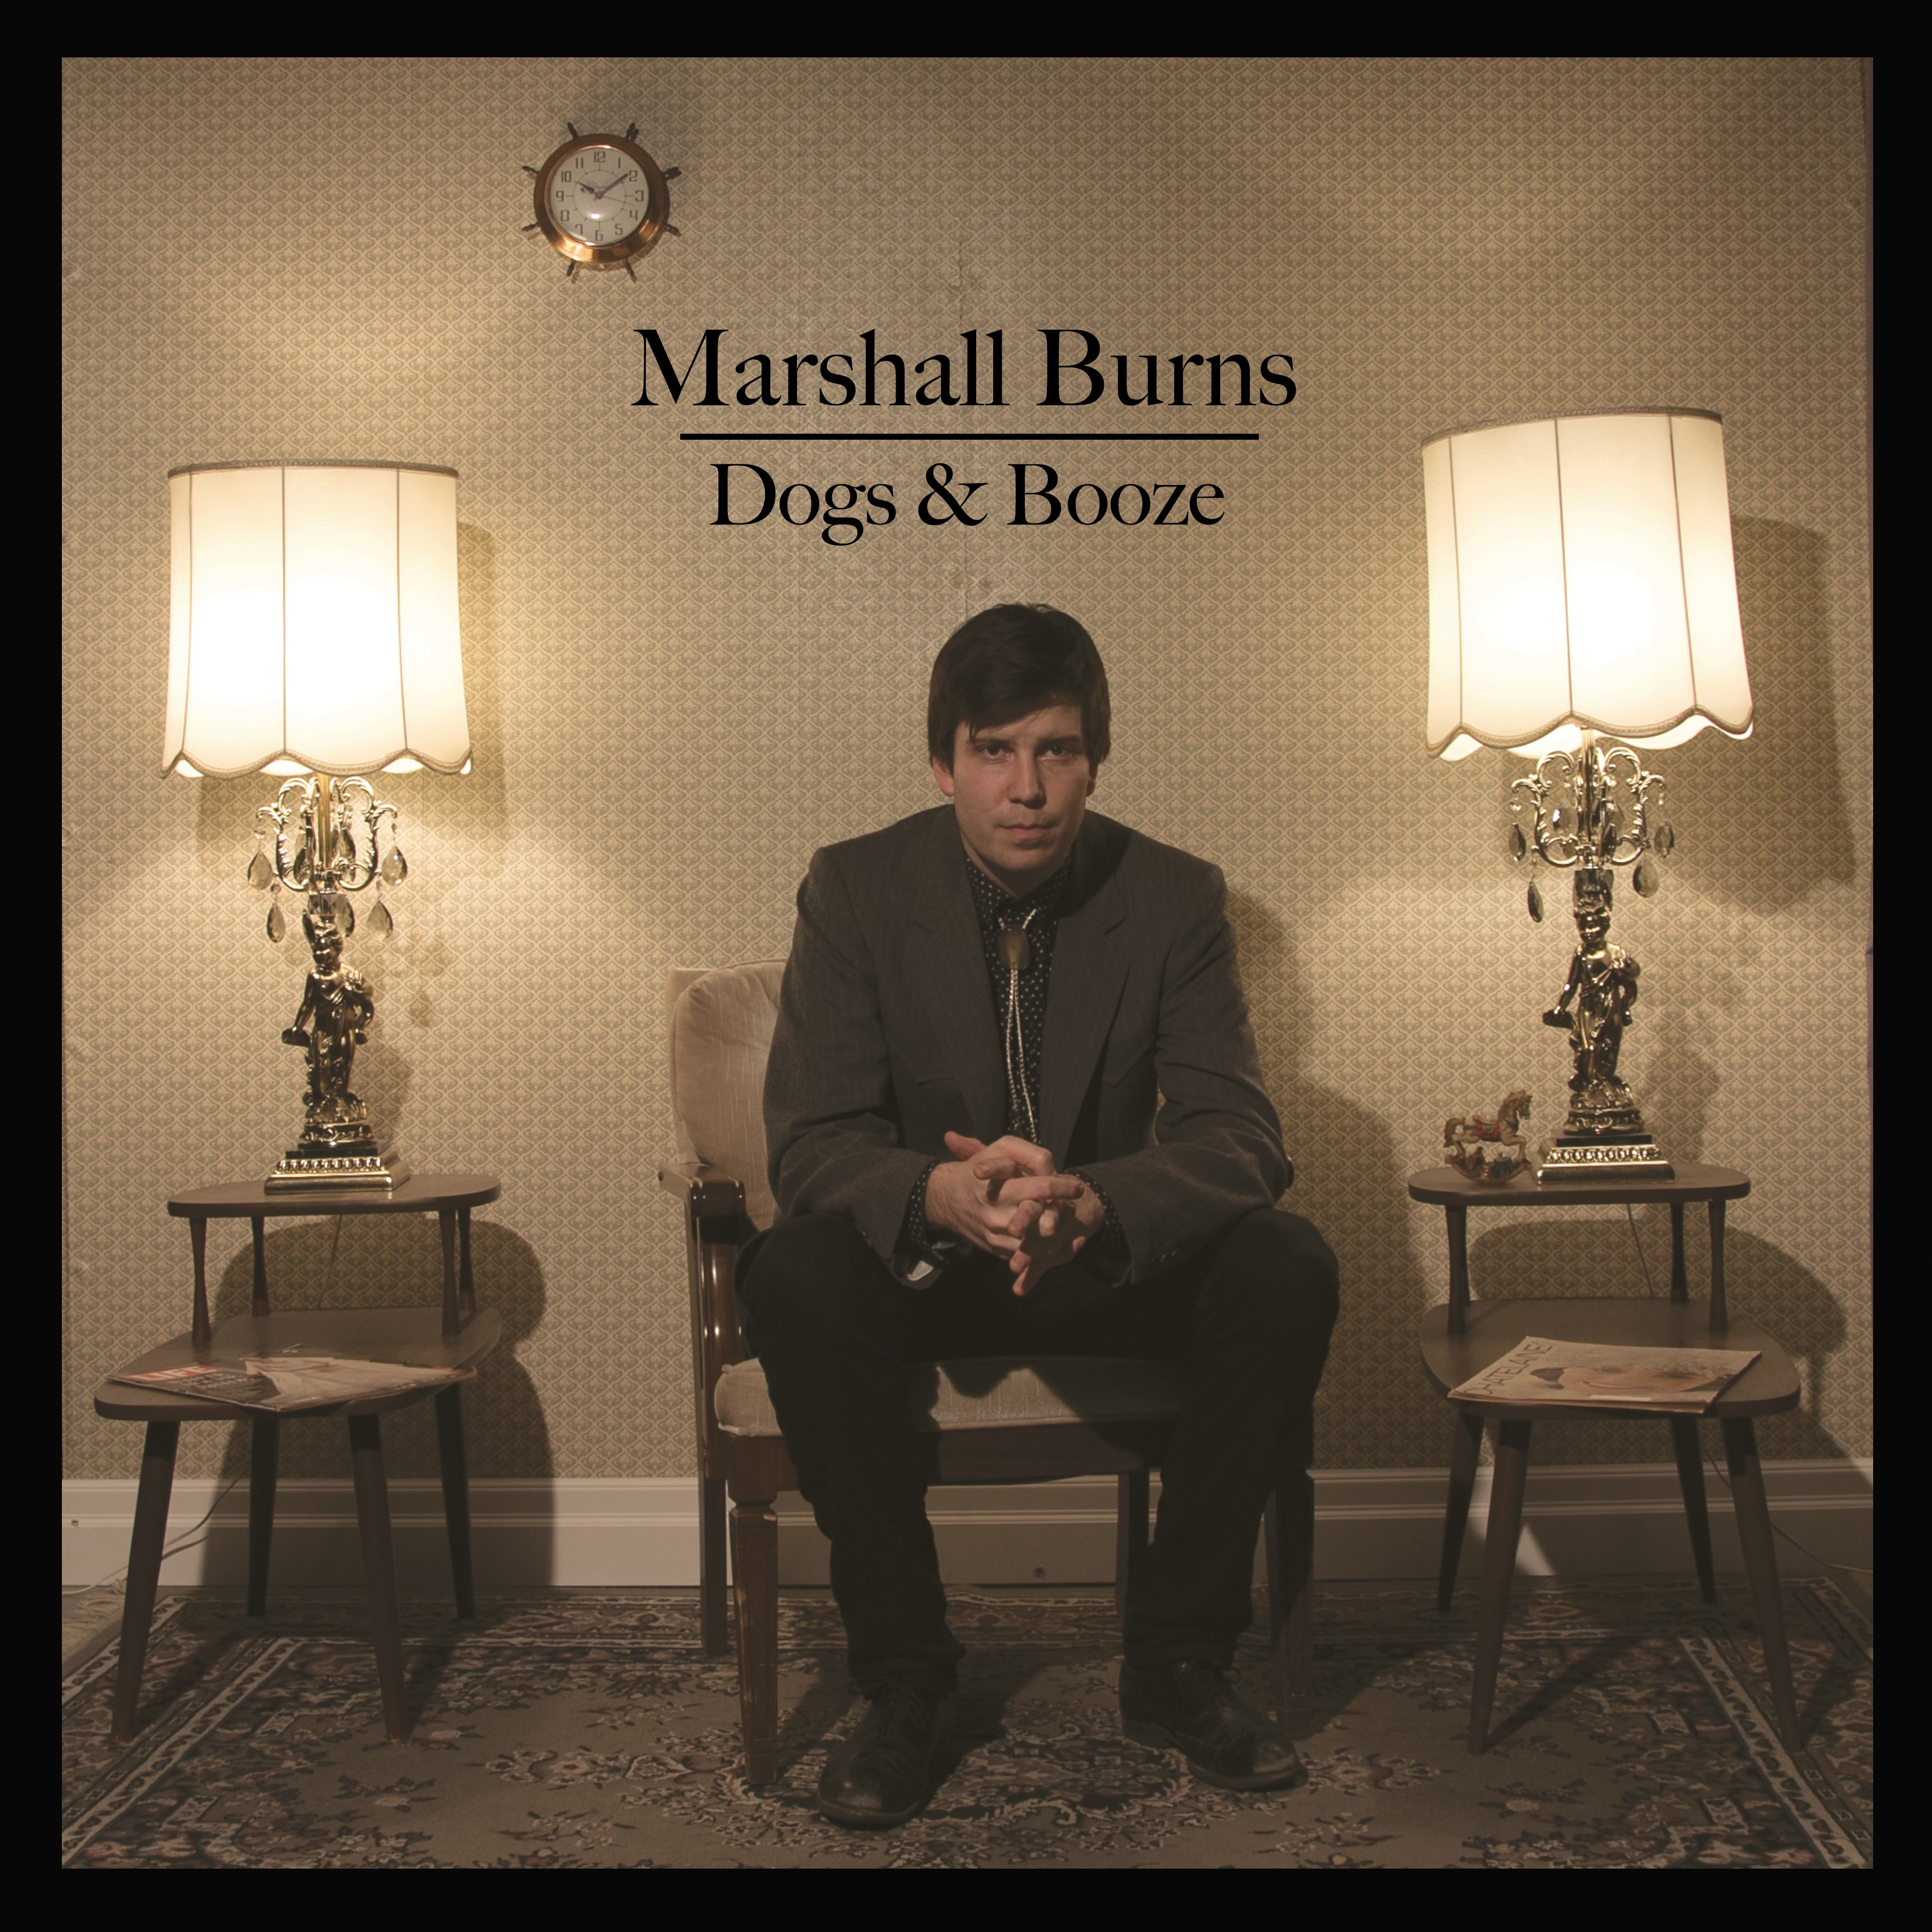 Marshall Burns Dogs & Booze Album Release with Lexi Buzash - 2 NIGHTS!